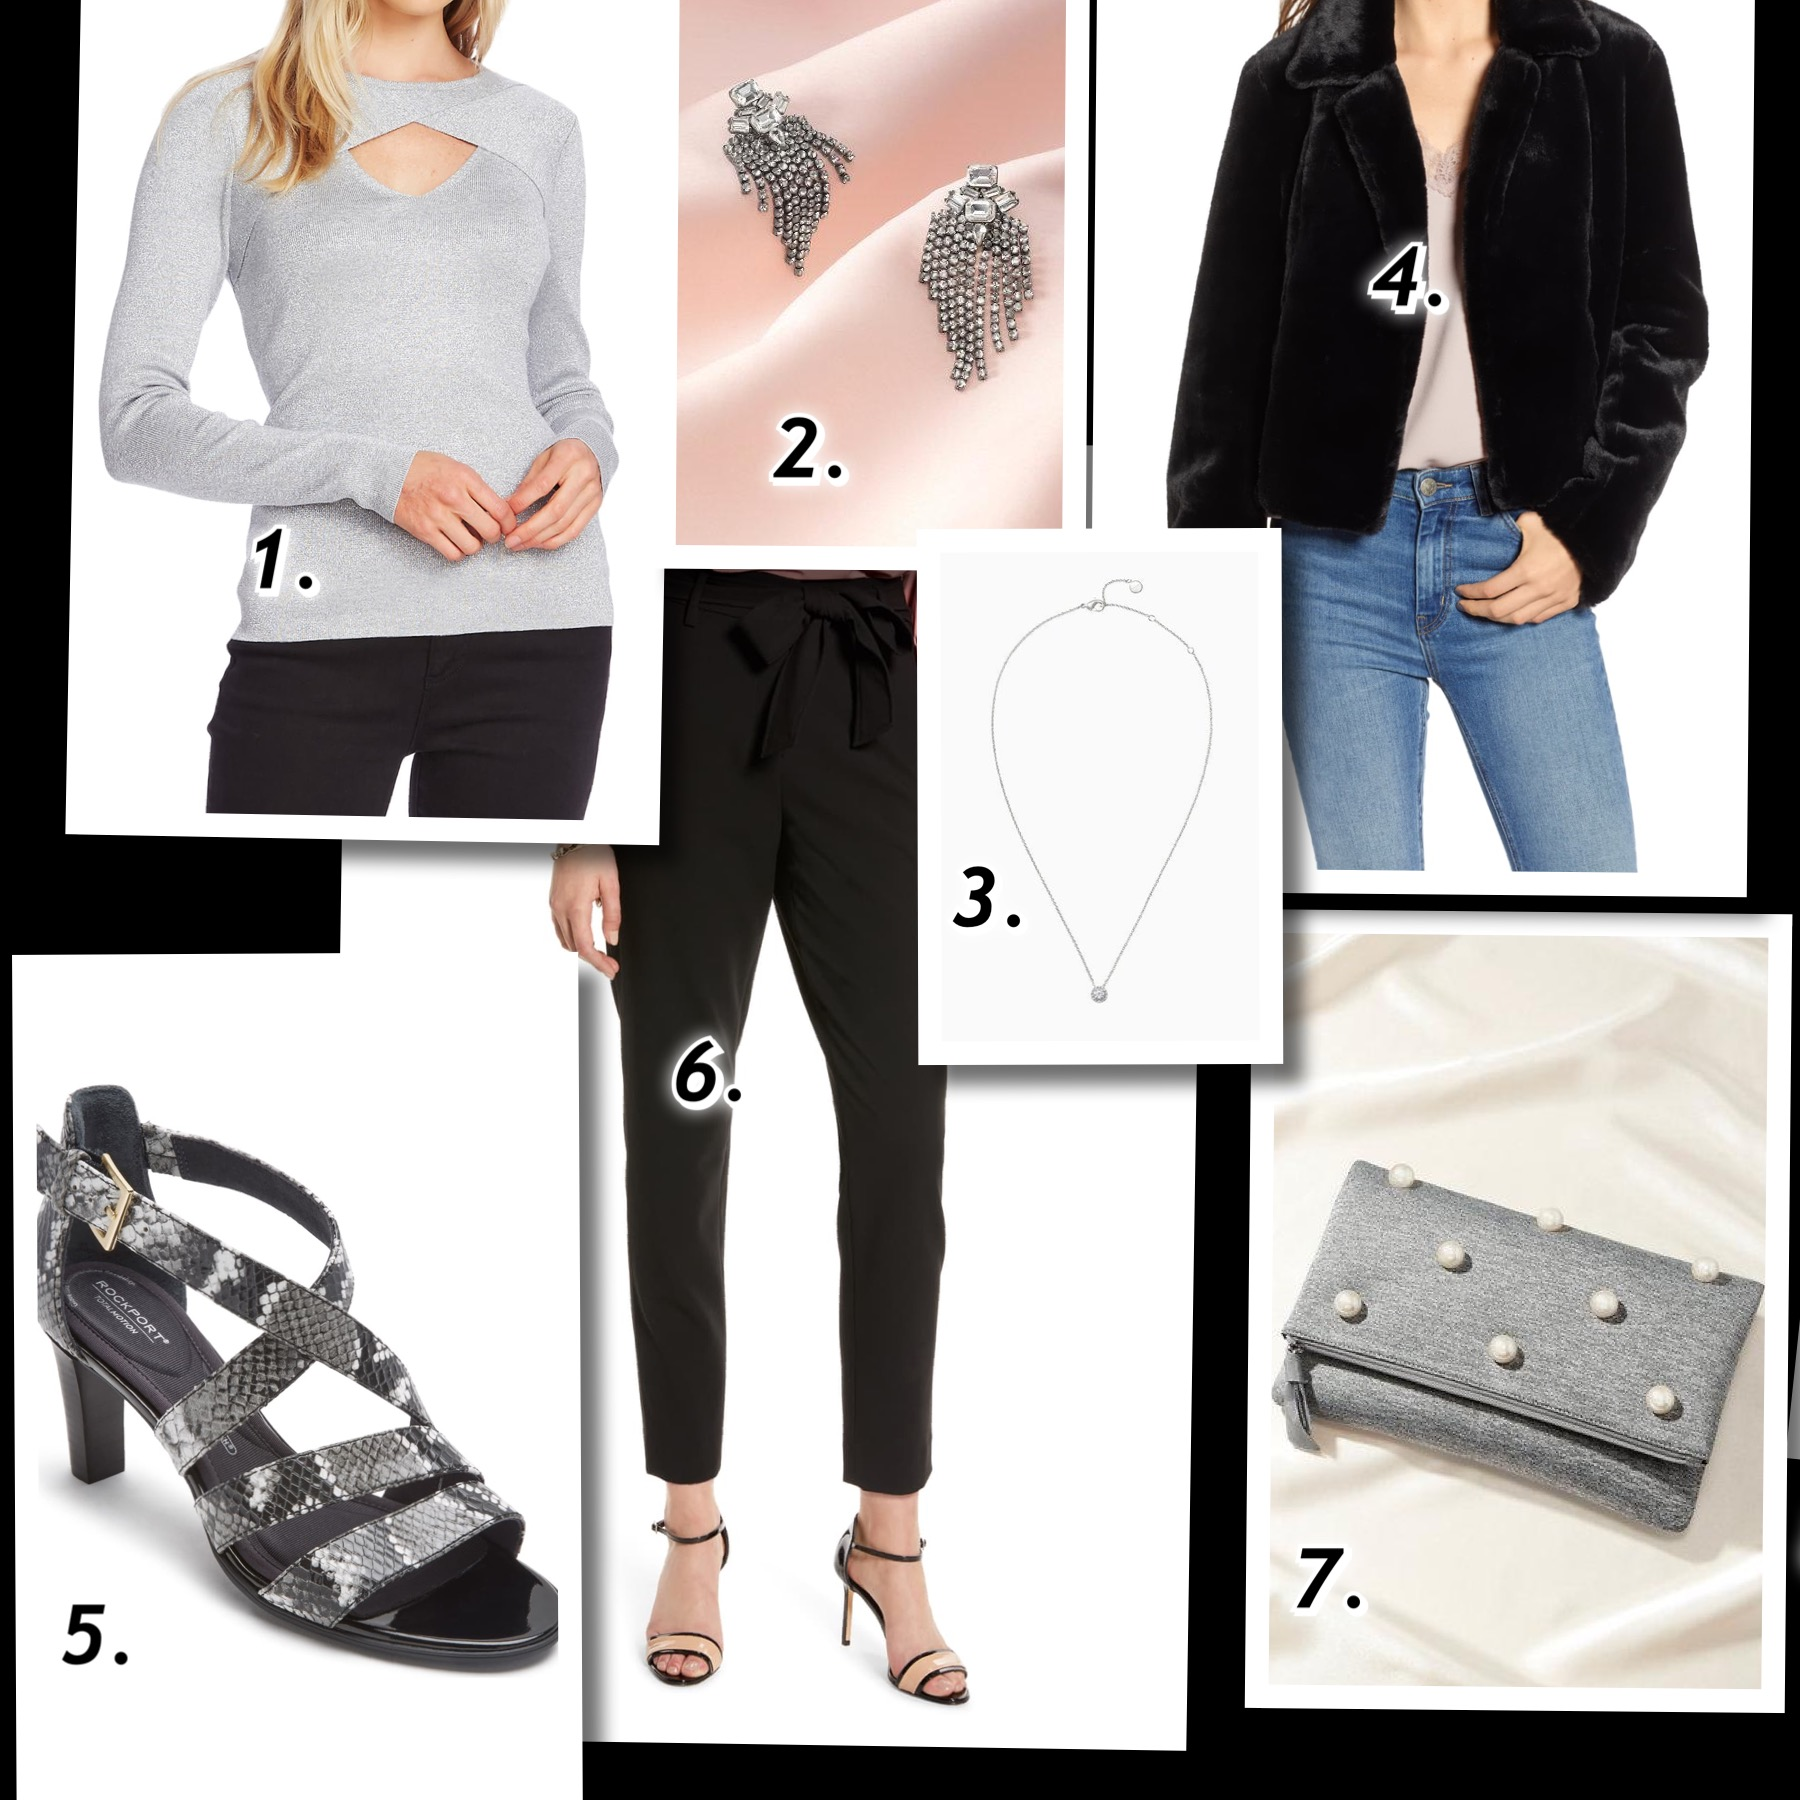 How to Create Dressy-Casual Holiday Outfits